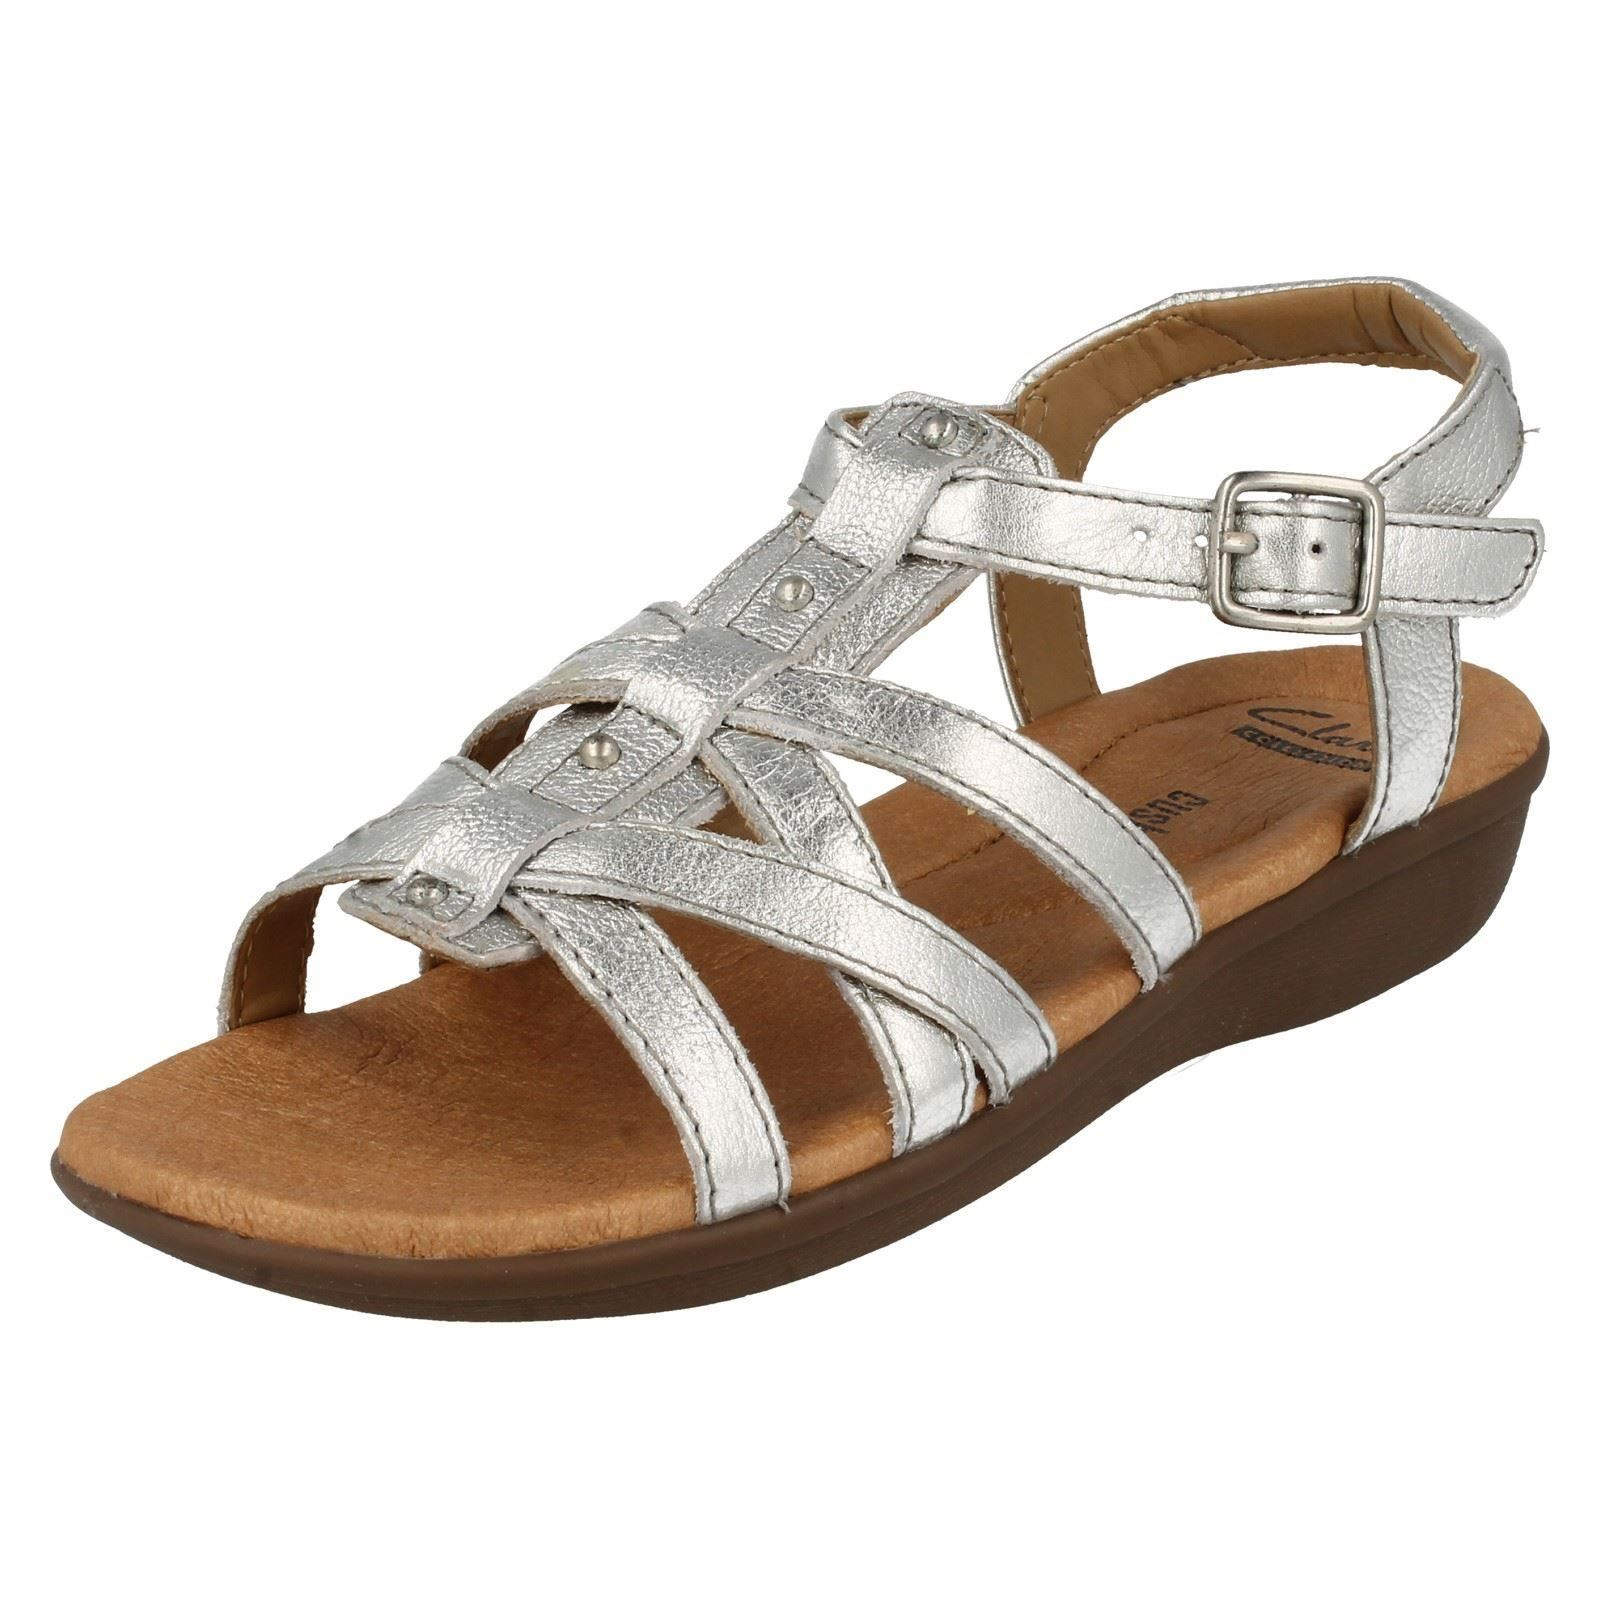 a9e8ff02d34fa Ladies Clarks Gladiator Style Summer Sandals Manilla Bonita 7.5 UK Silver  D. About this product. Picture 1 of 10  Picture 2 of 10 ...